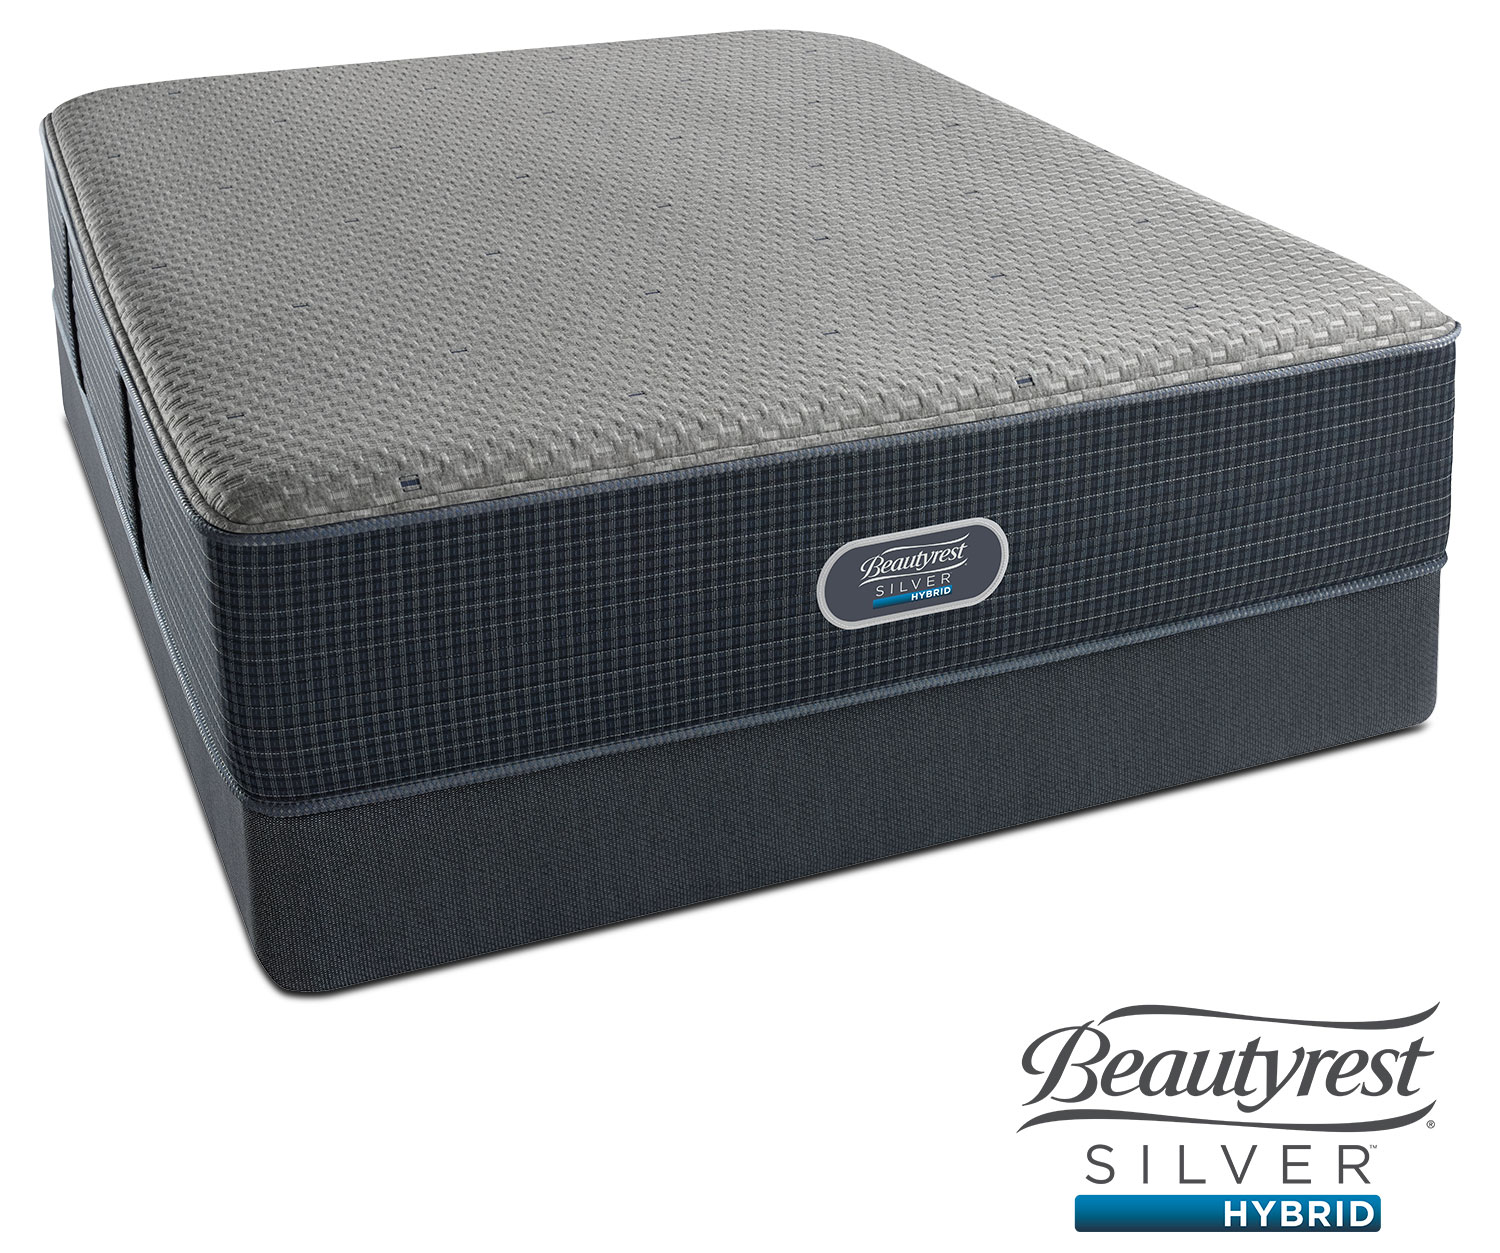 Mattresses and Bedding - Belle Island Ultra Plush Queen Mattress and Foundation Set